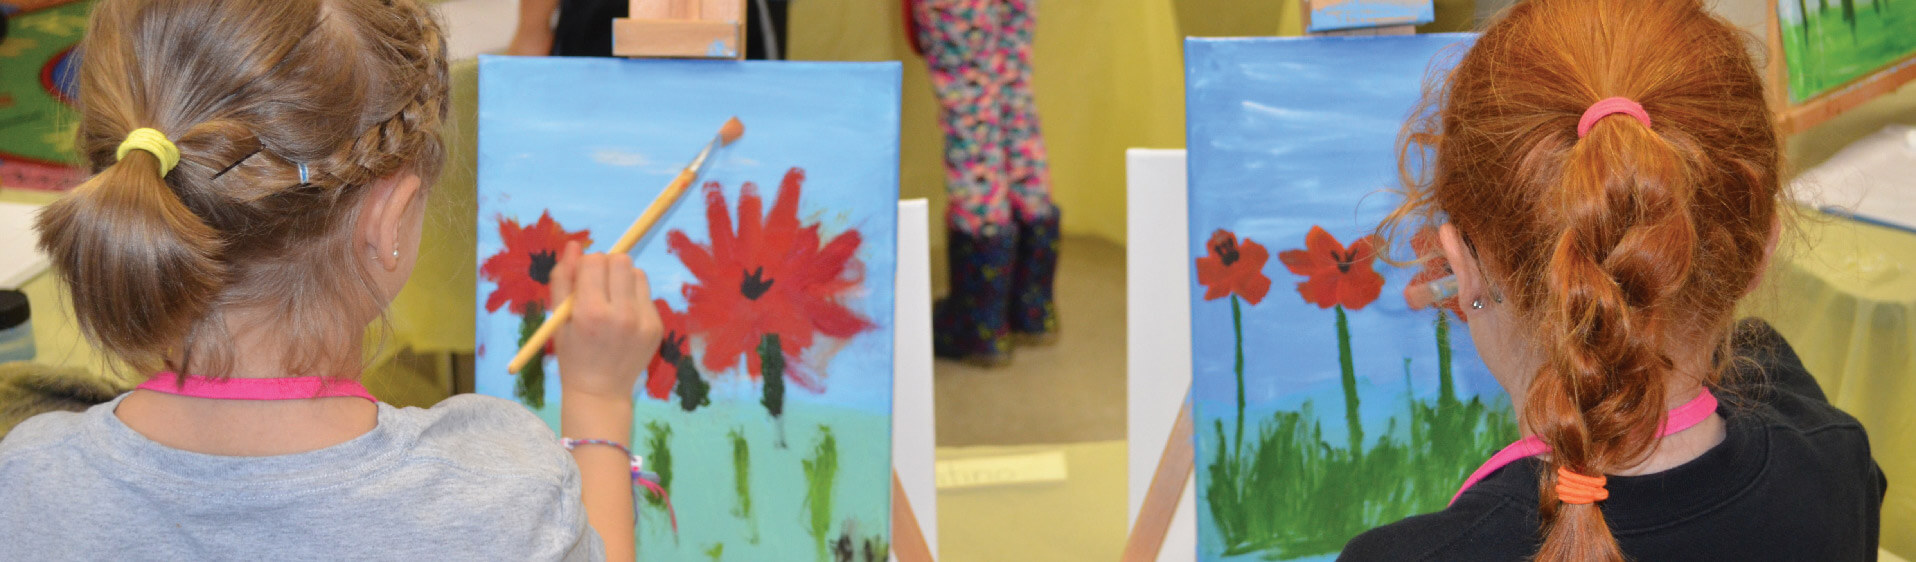 Early years students painting